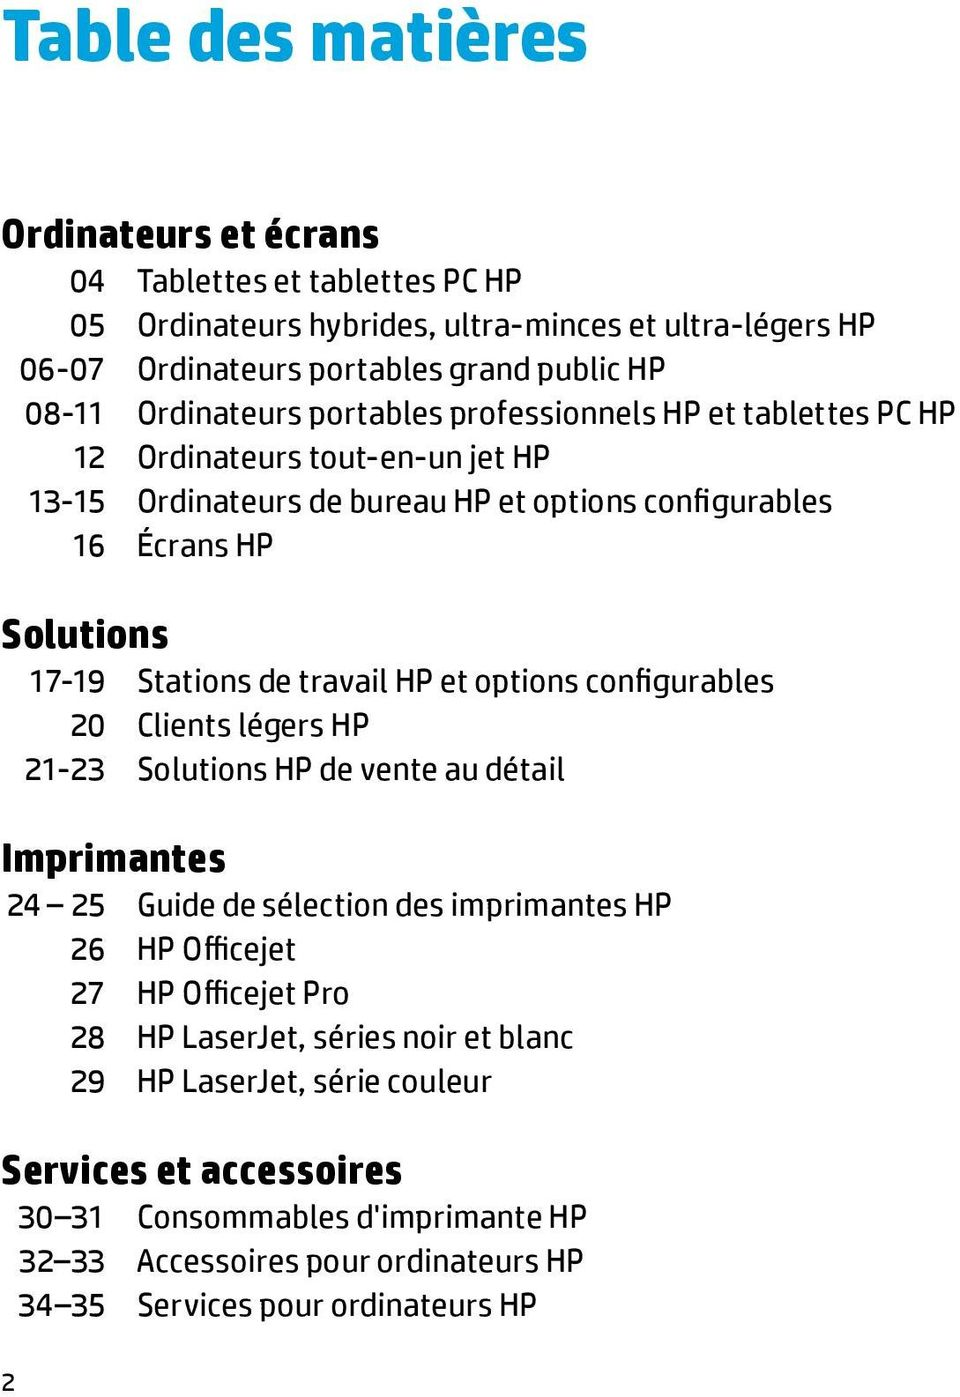 travail HP et options configurables 20 Clients légers HP 21-23 Solutions HP de vente au détail Imprimantes 24 25 Guide de sélection des imprimantes HP 26 HP Officejet 27 HP Officejet Pro